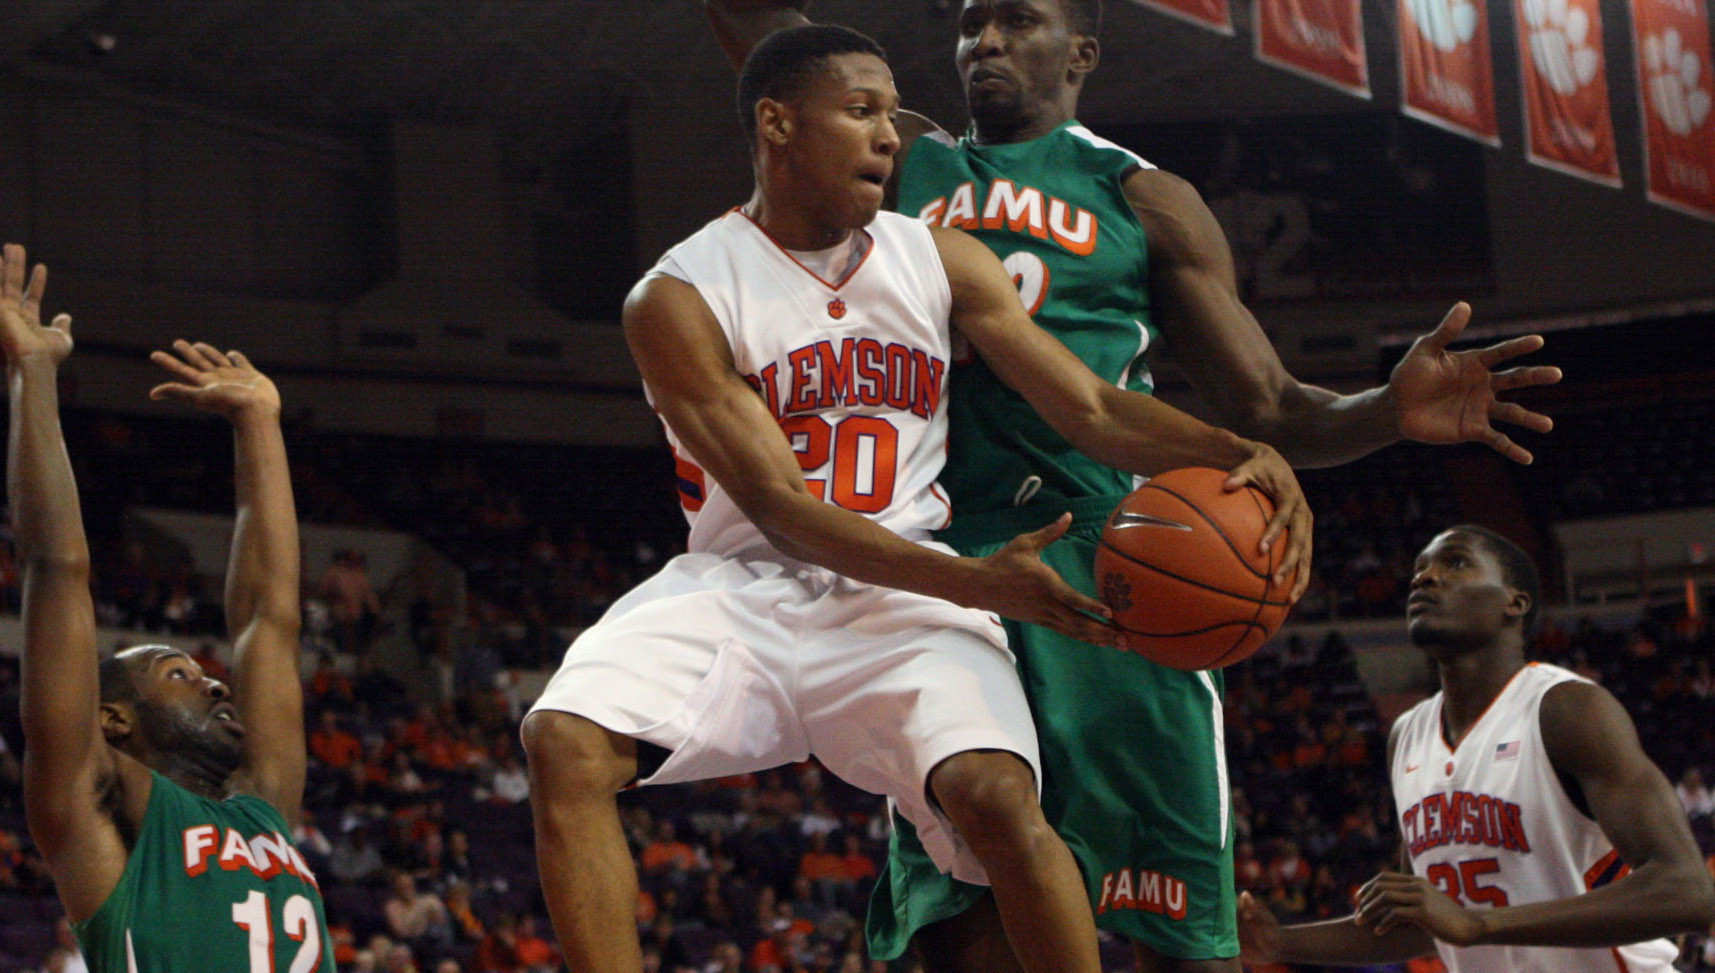 Clemson Takes Command in Second Half and Coasts to 80-57 Victory over Florida A&M